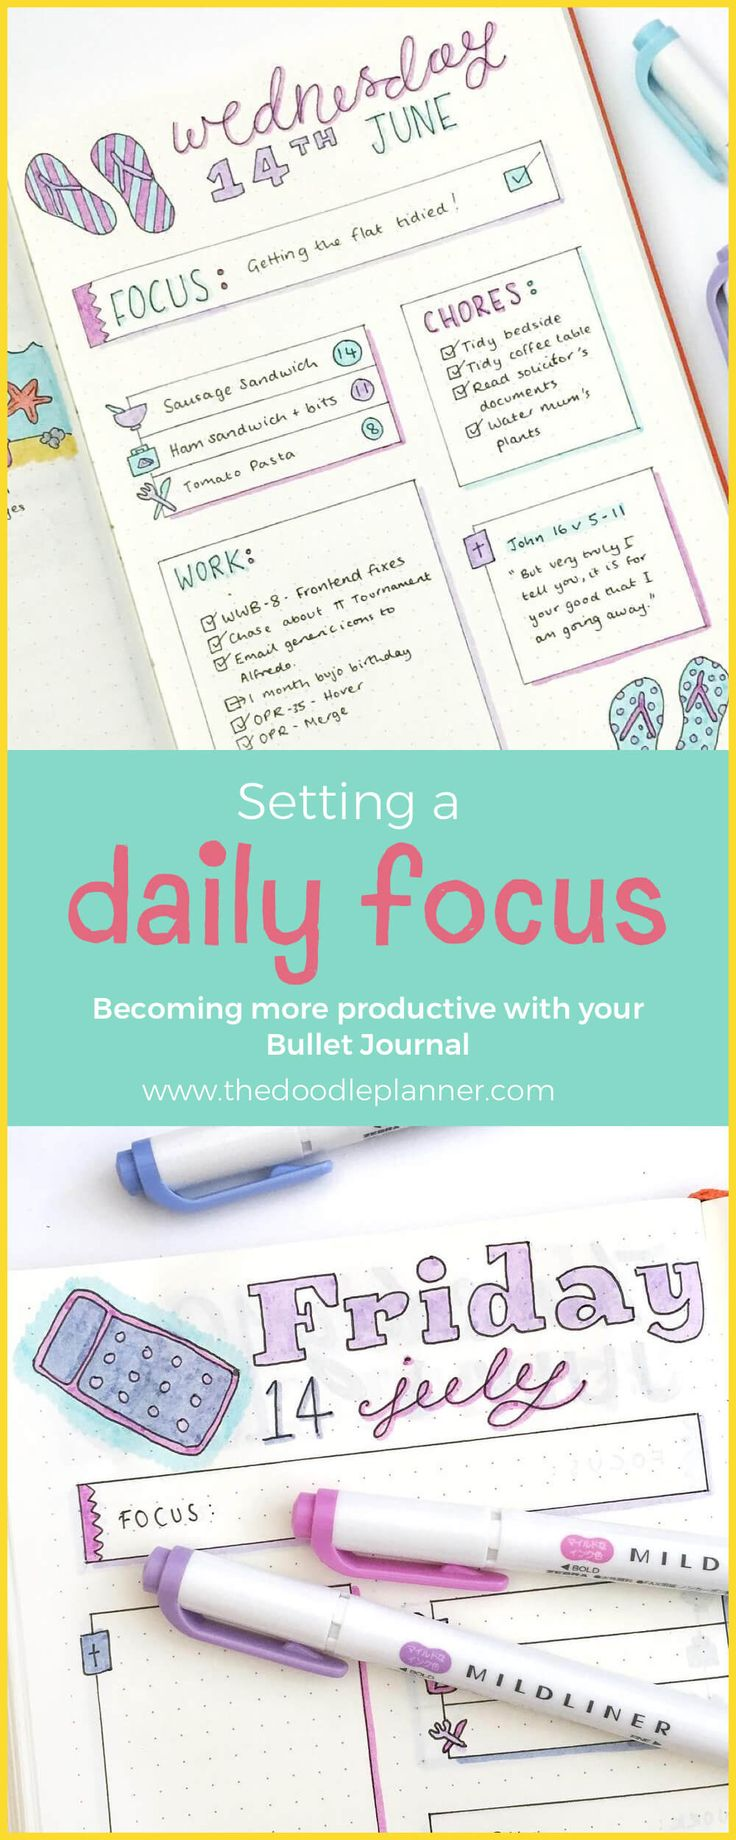 Setting a Daily Focus - Become more productive with your Bullet Journal